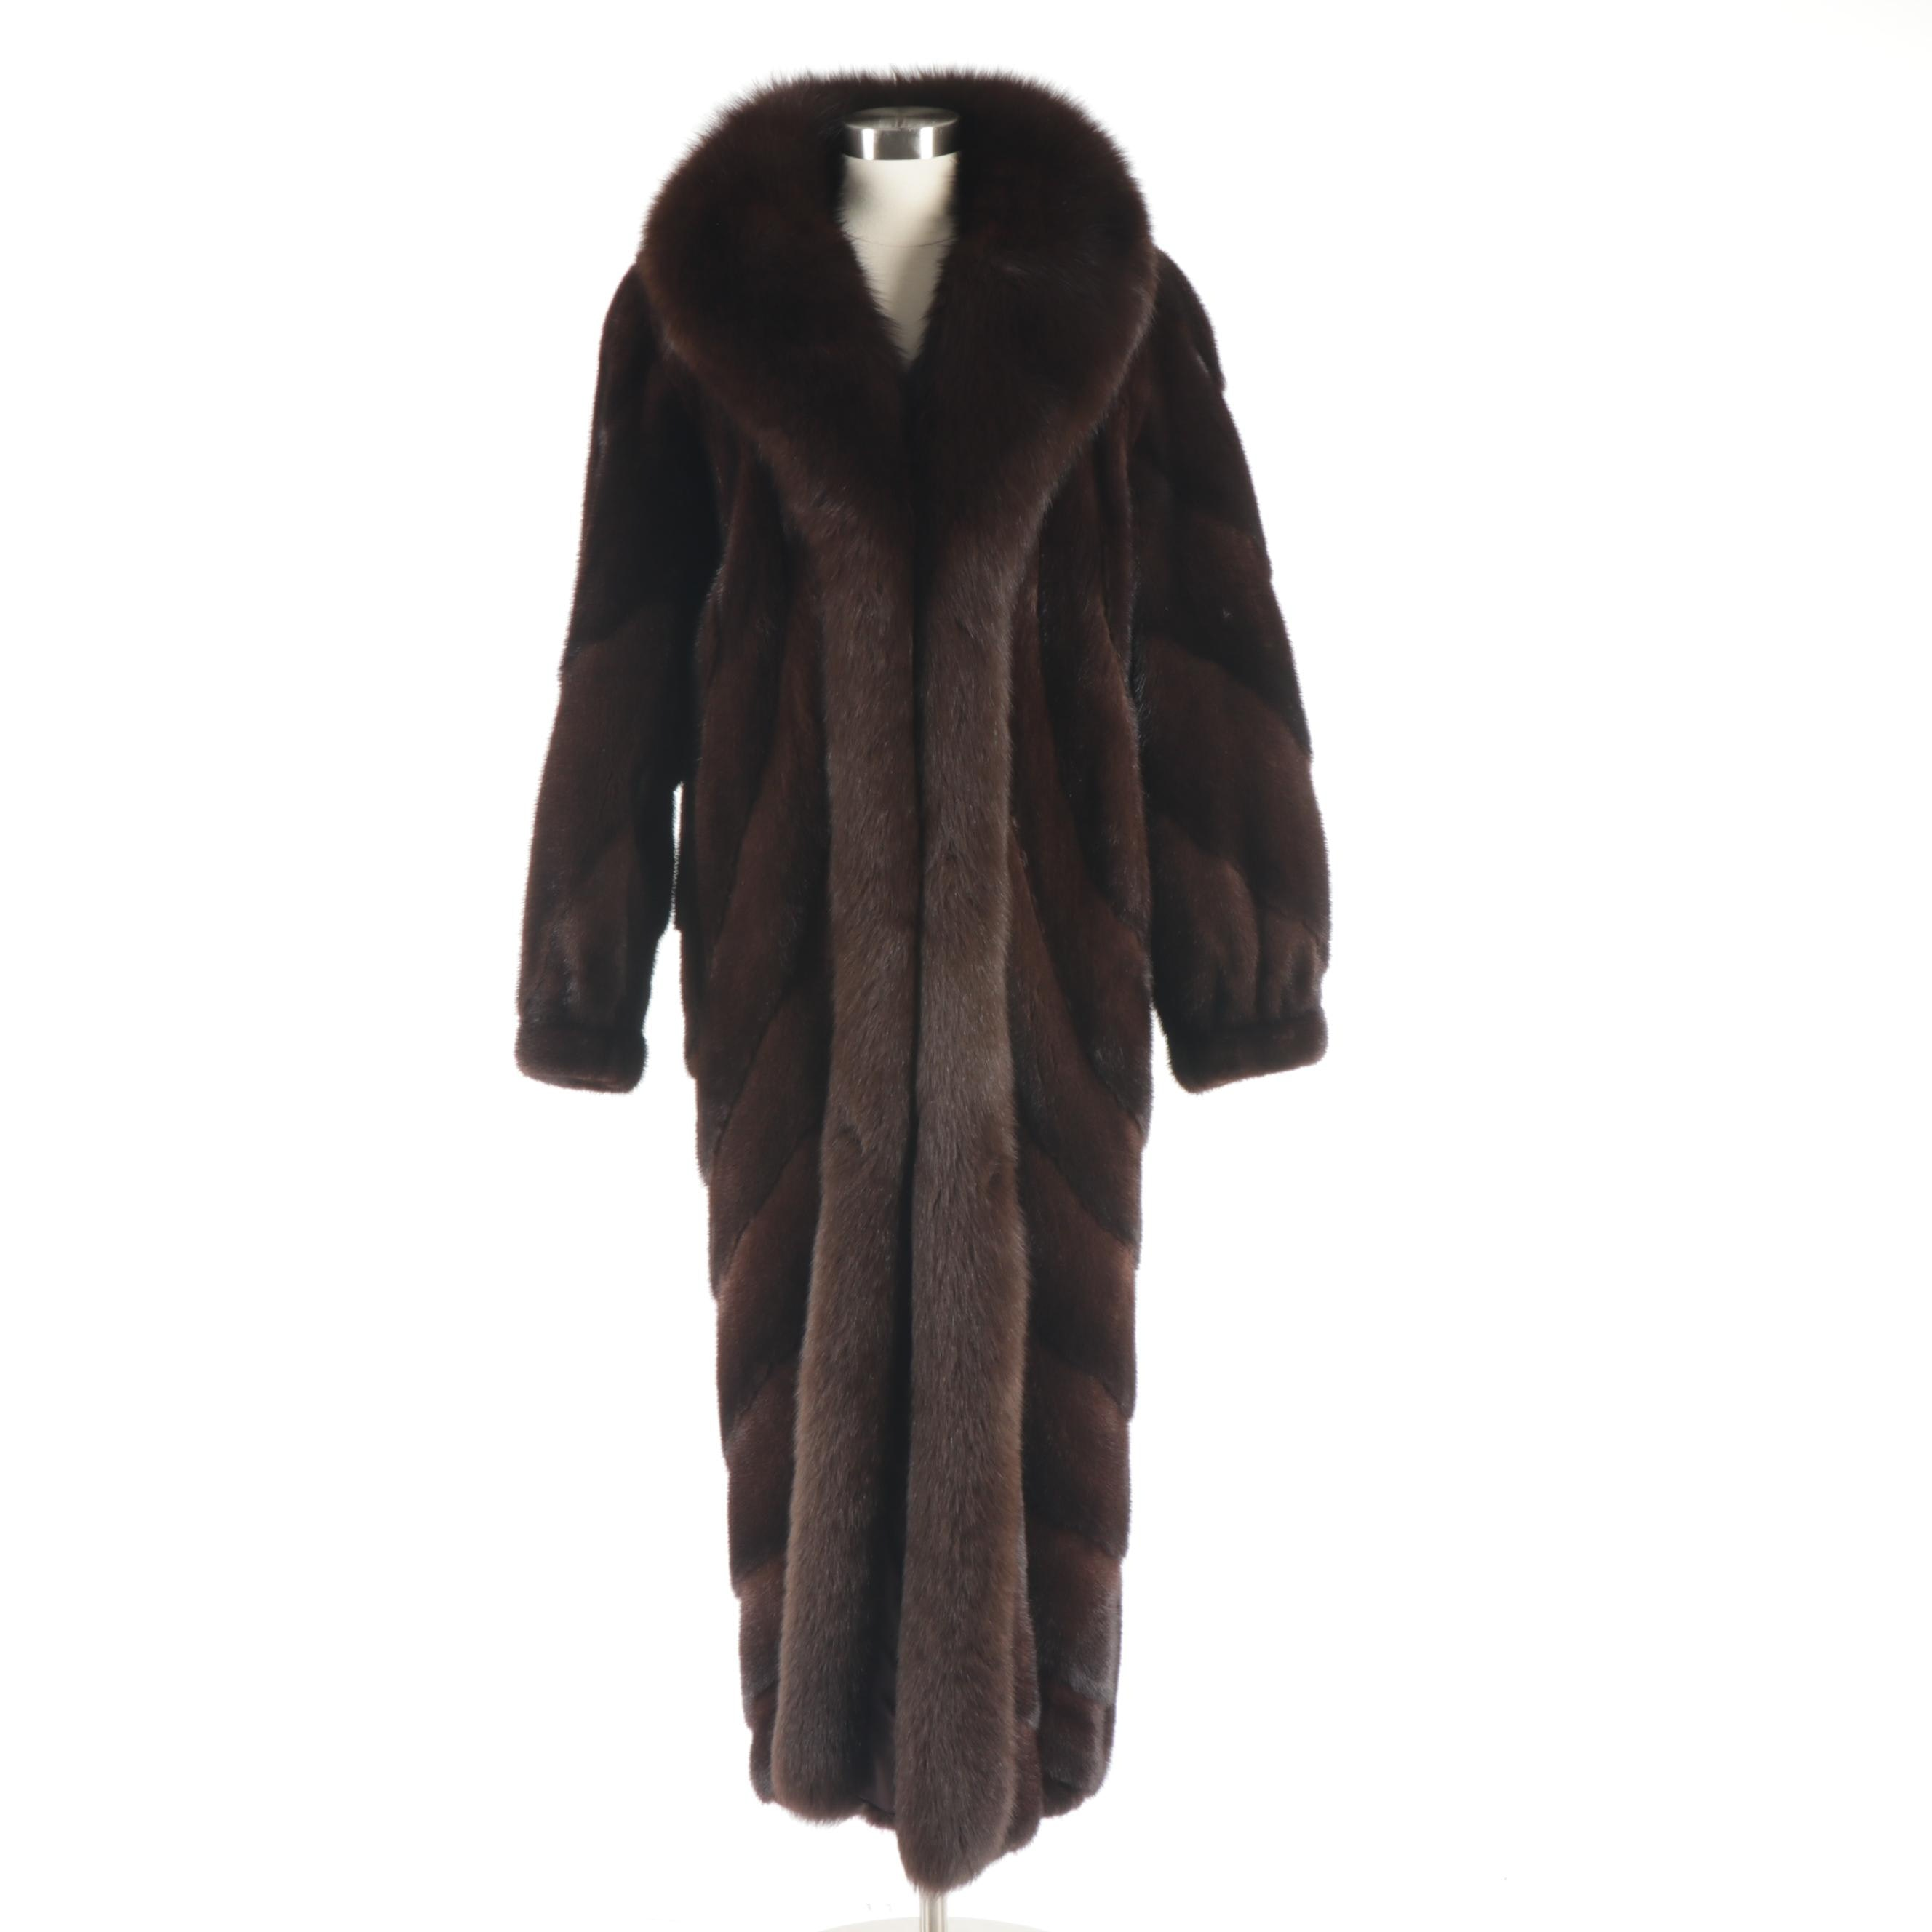 Mary McFadden Furs Mahogany Mink Fur Coat with Fox Fur Tuxedo Collar